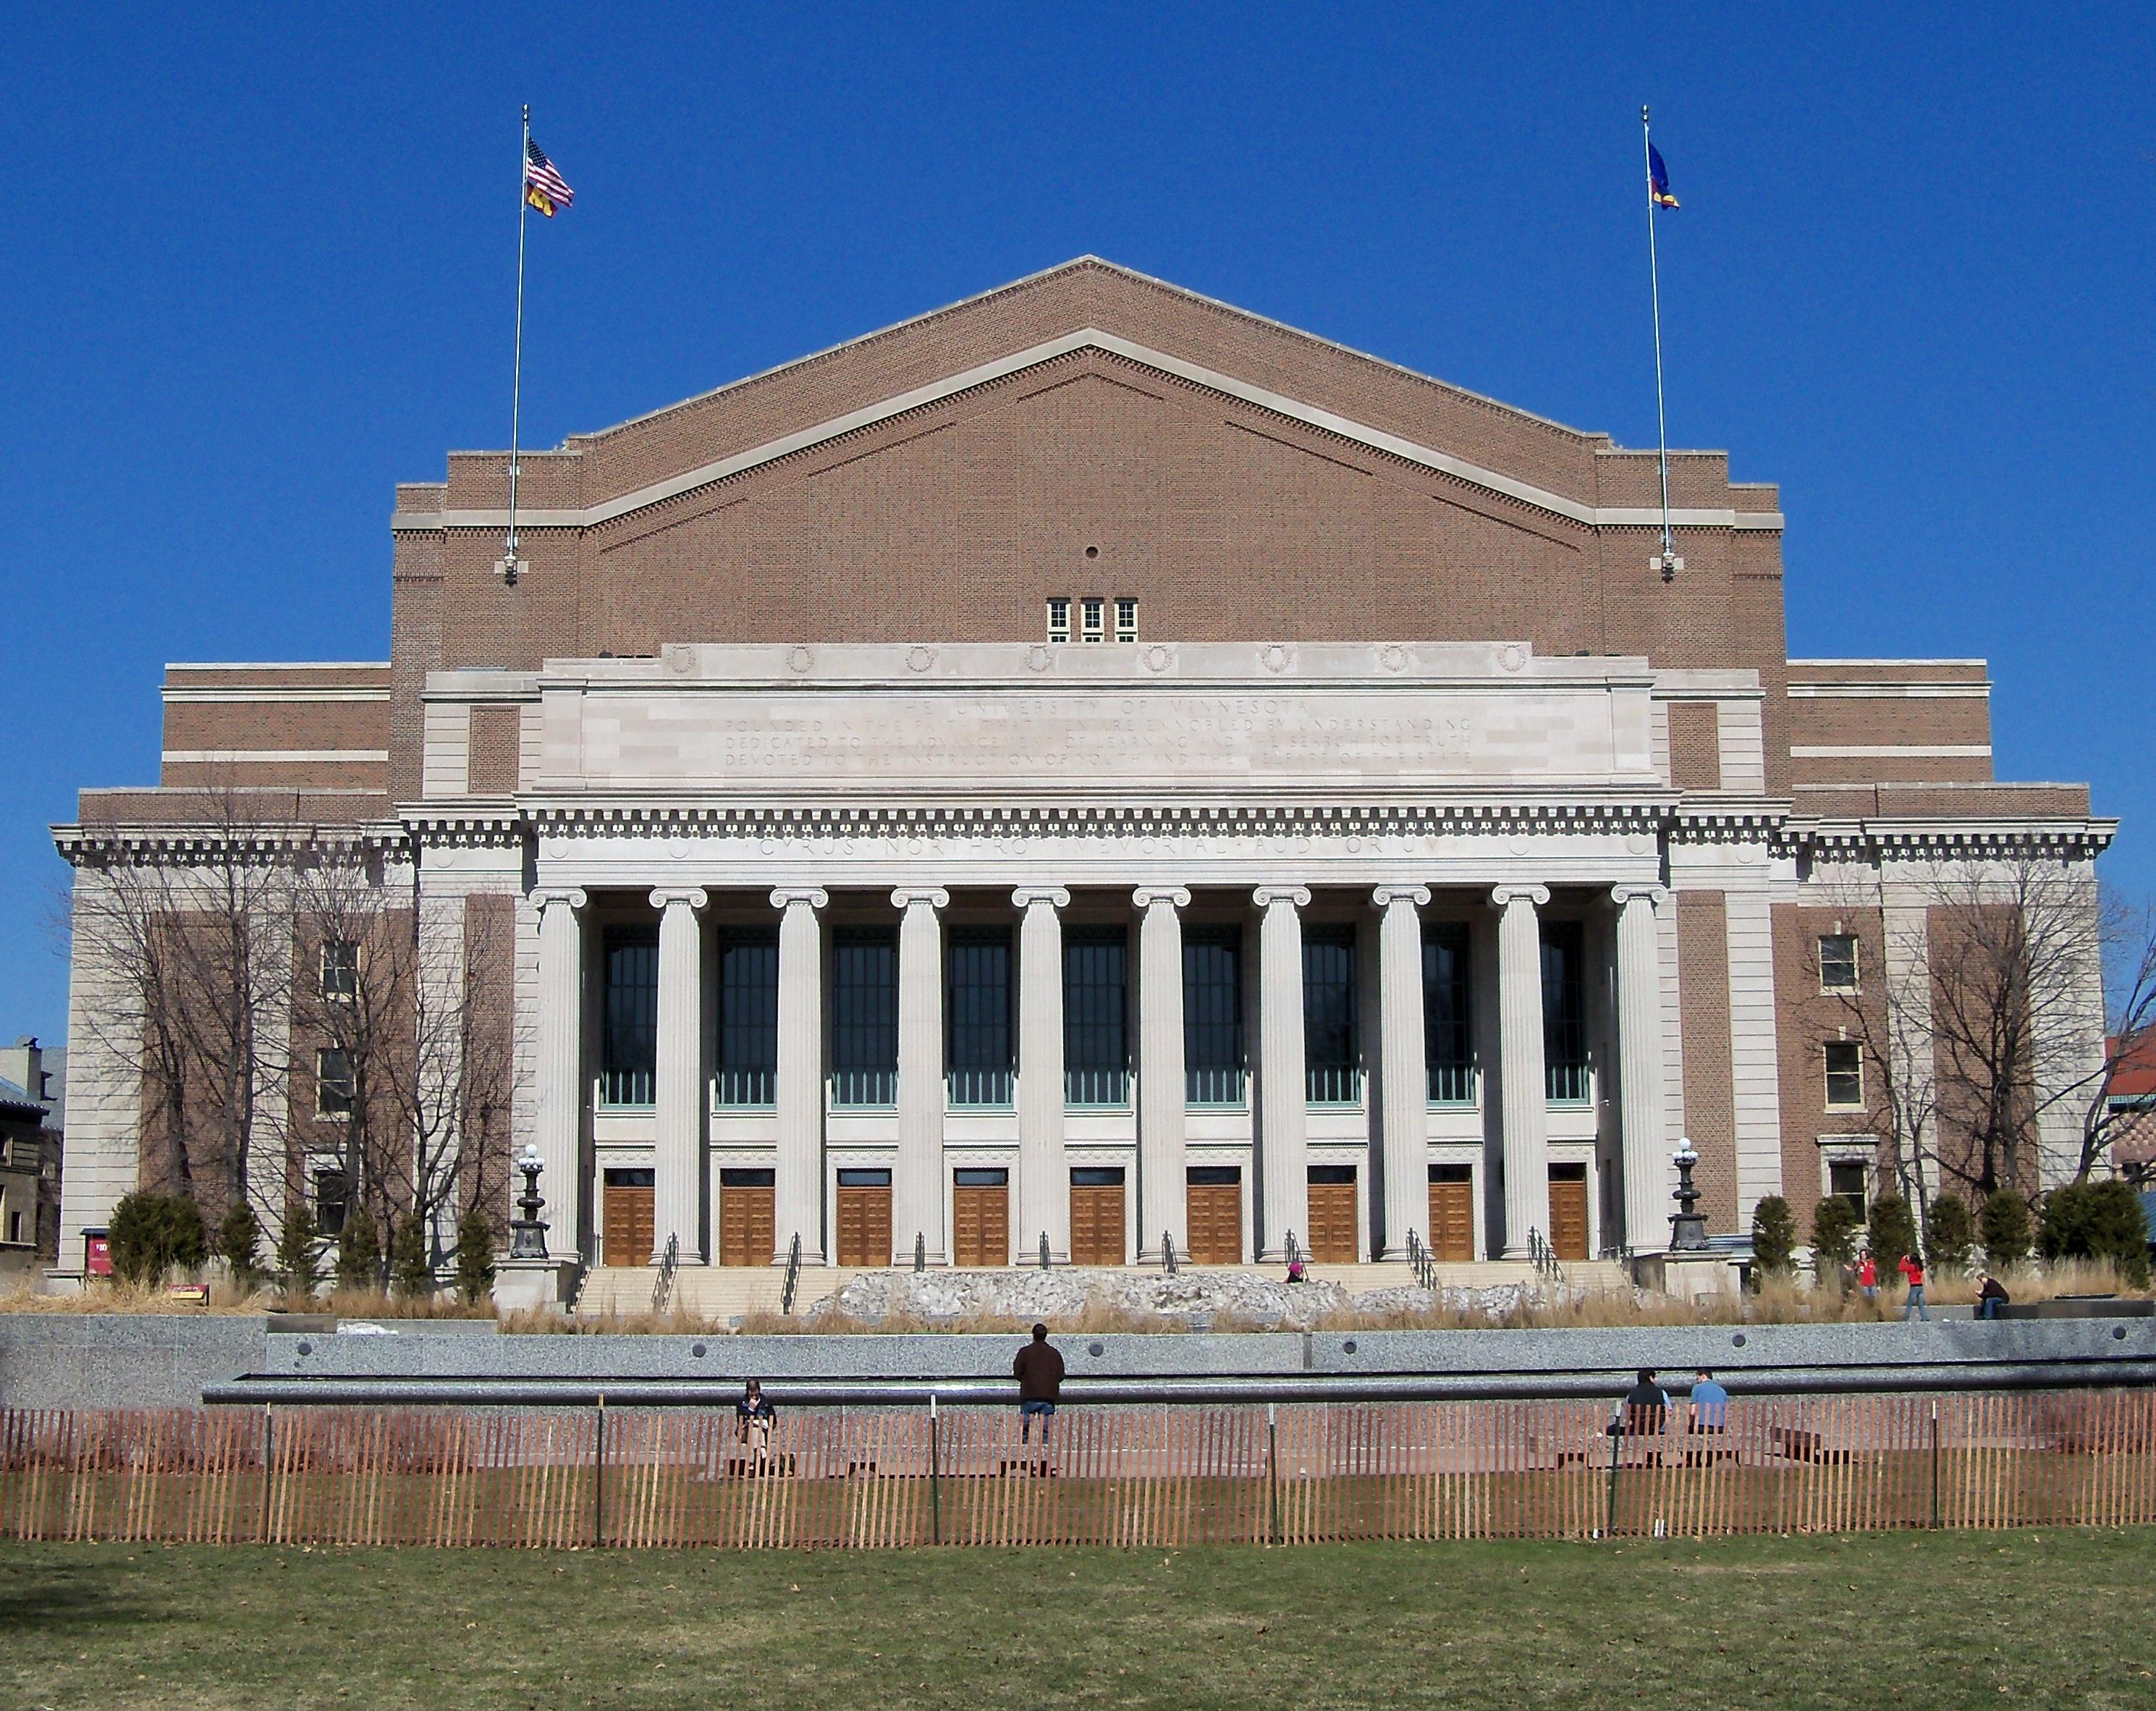 http://upload.wikimedia.org/wikipedia/commons/7/71/Northrop_Auditorium_Minneapolis_1.jpg